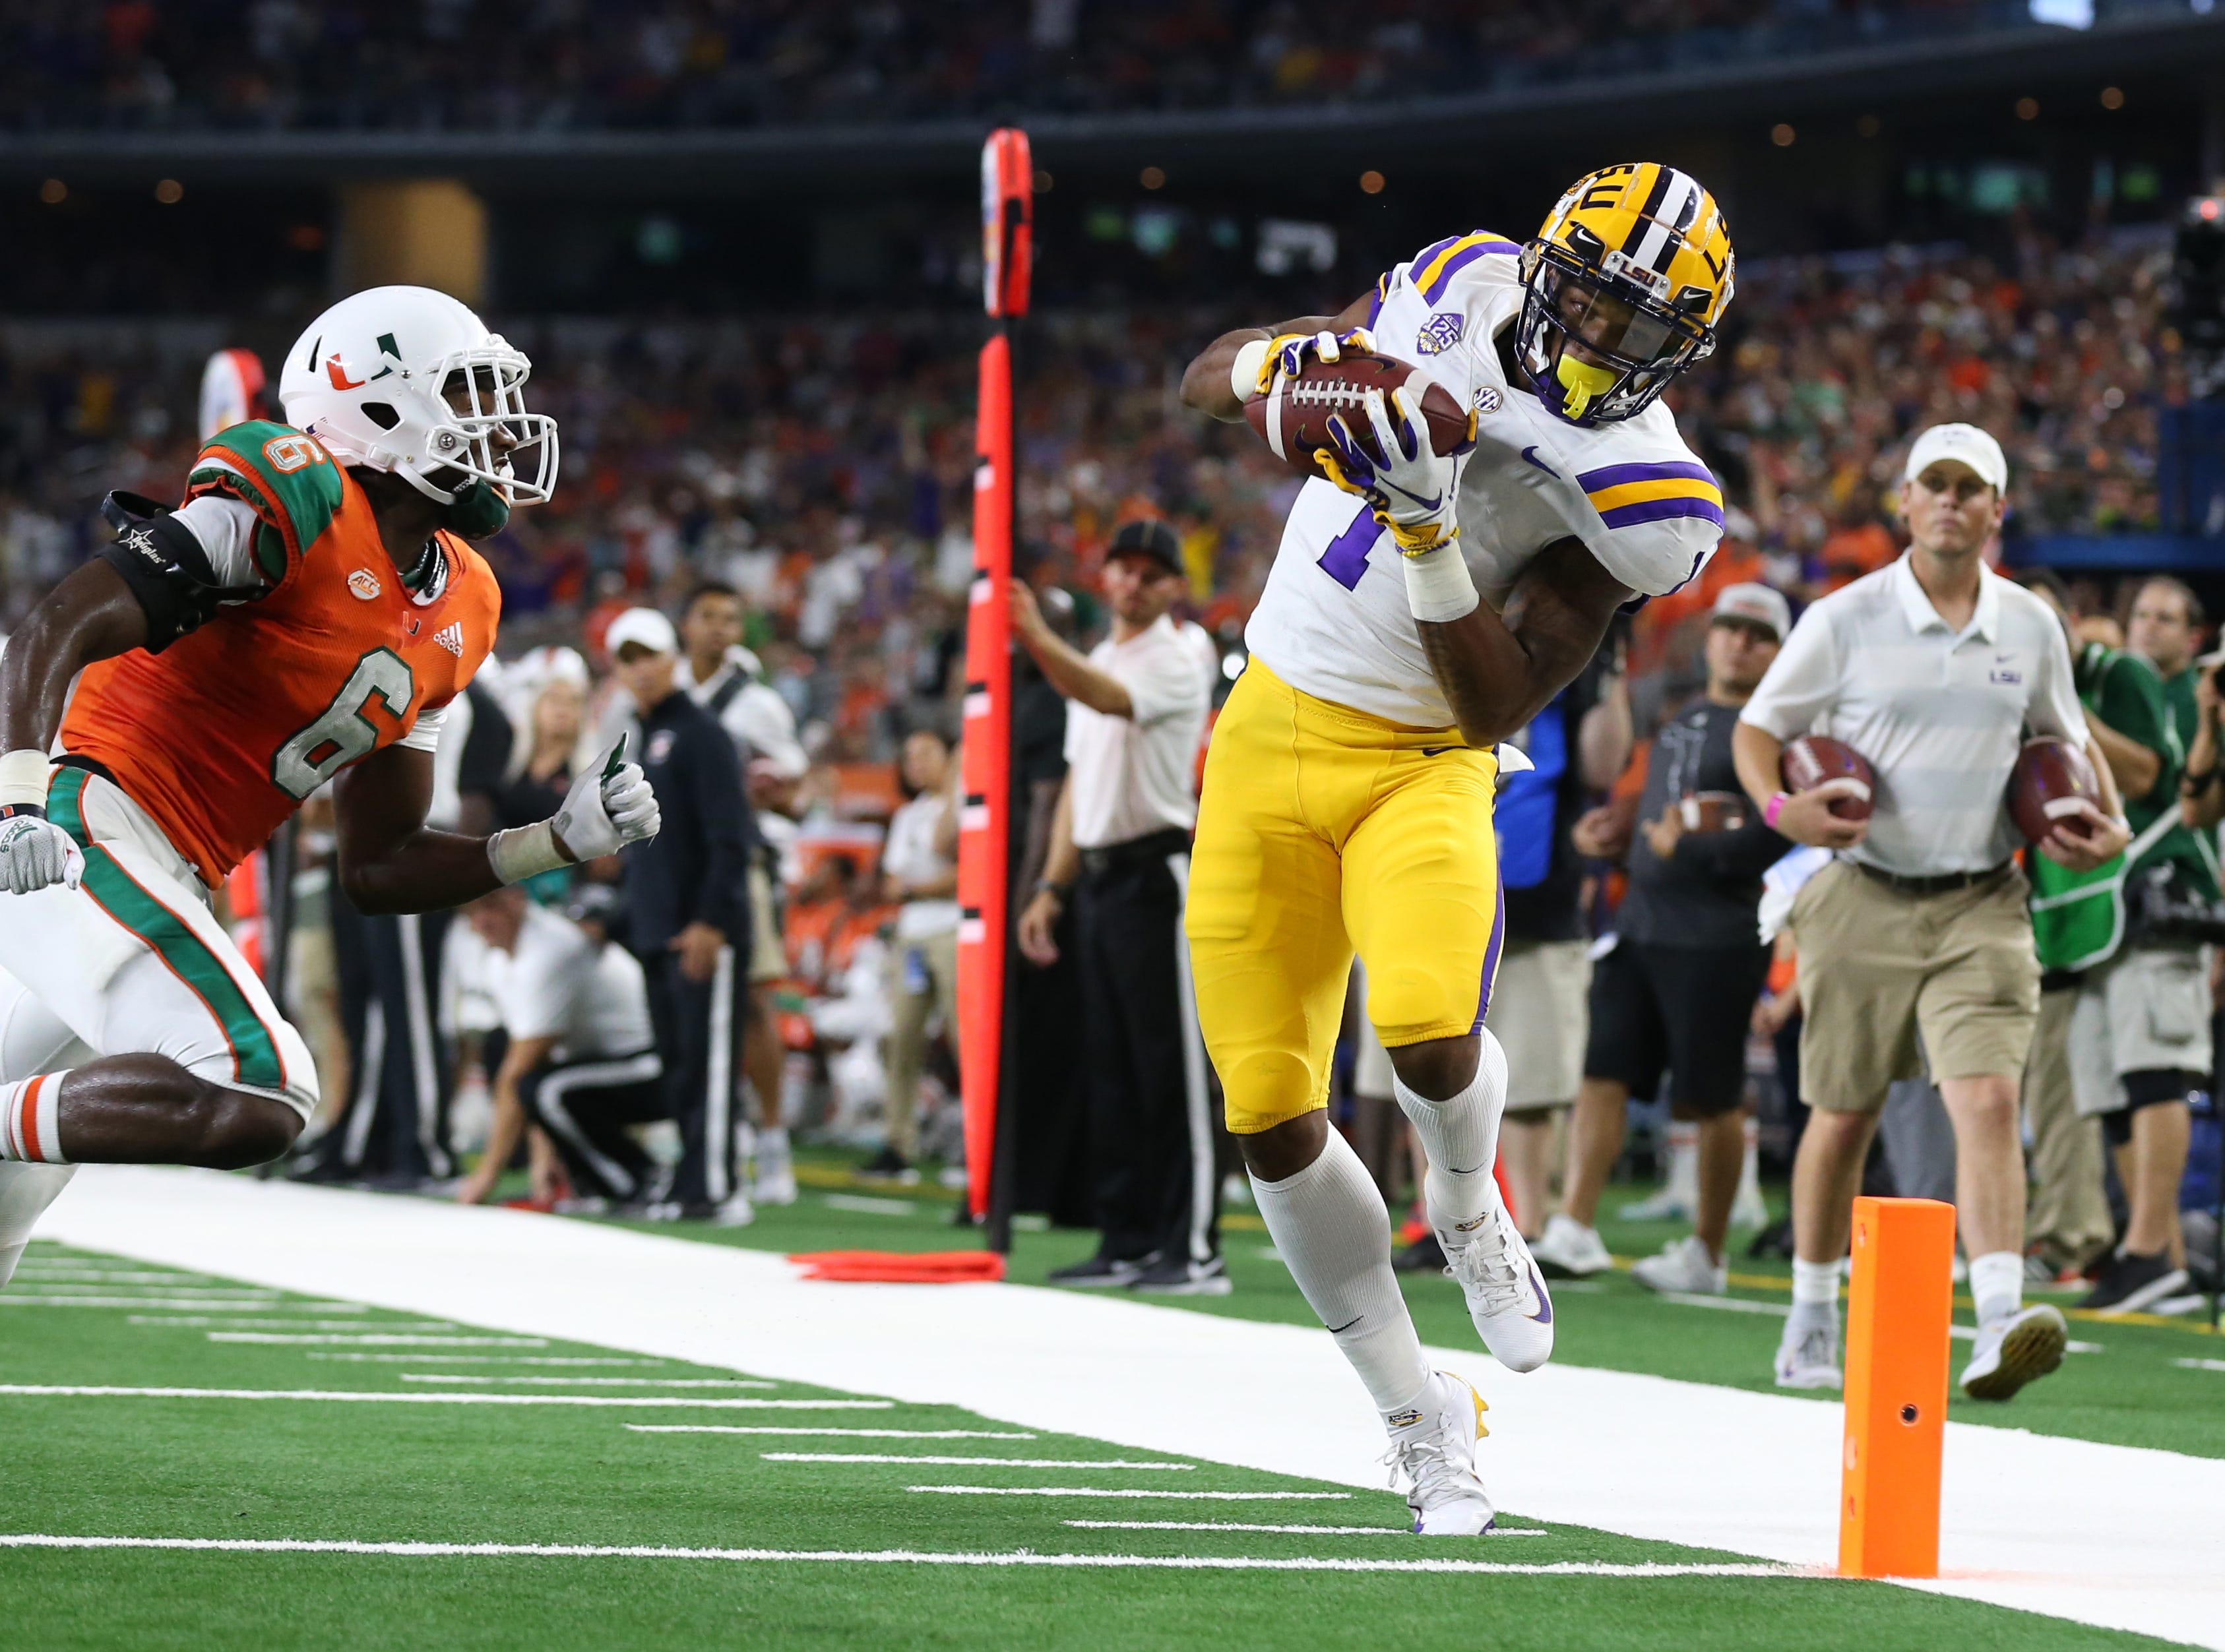 LSU Tigers receiver Ja'Marr Chase (1) makes a catch at the 1-yard line in the second quarter against Miami Hurricanes cornerback Jhavonte Dean (6) at AT&T Stadium.